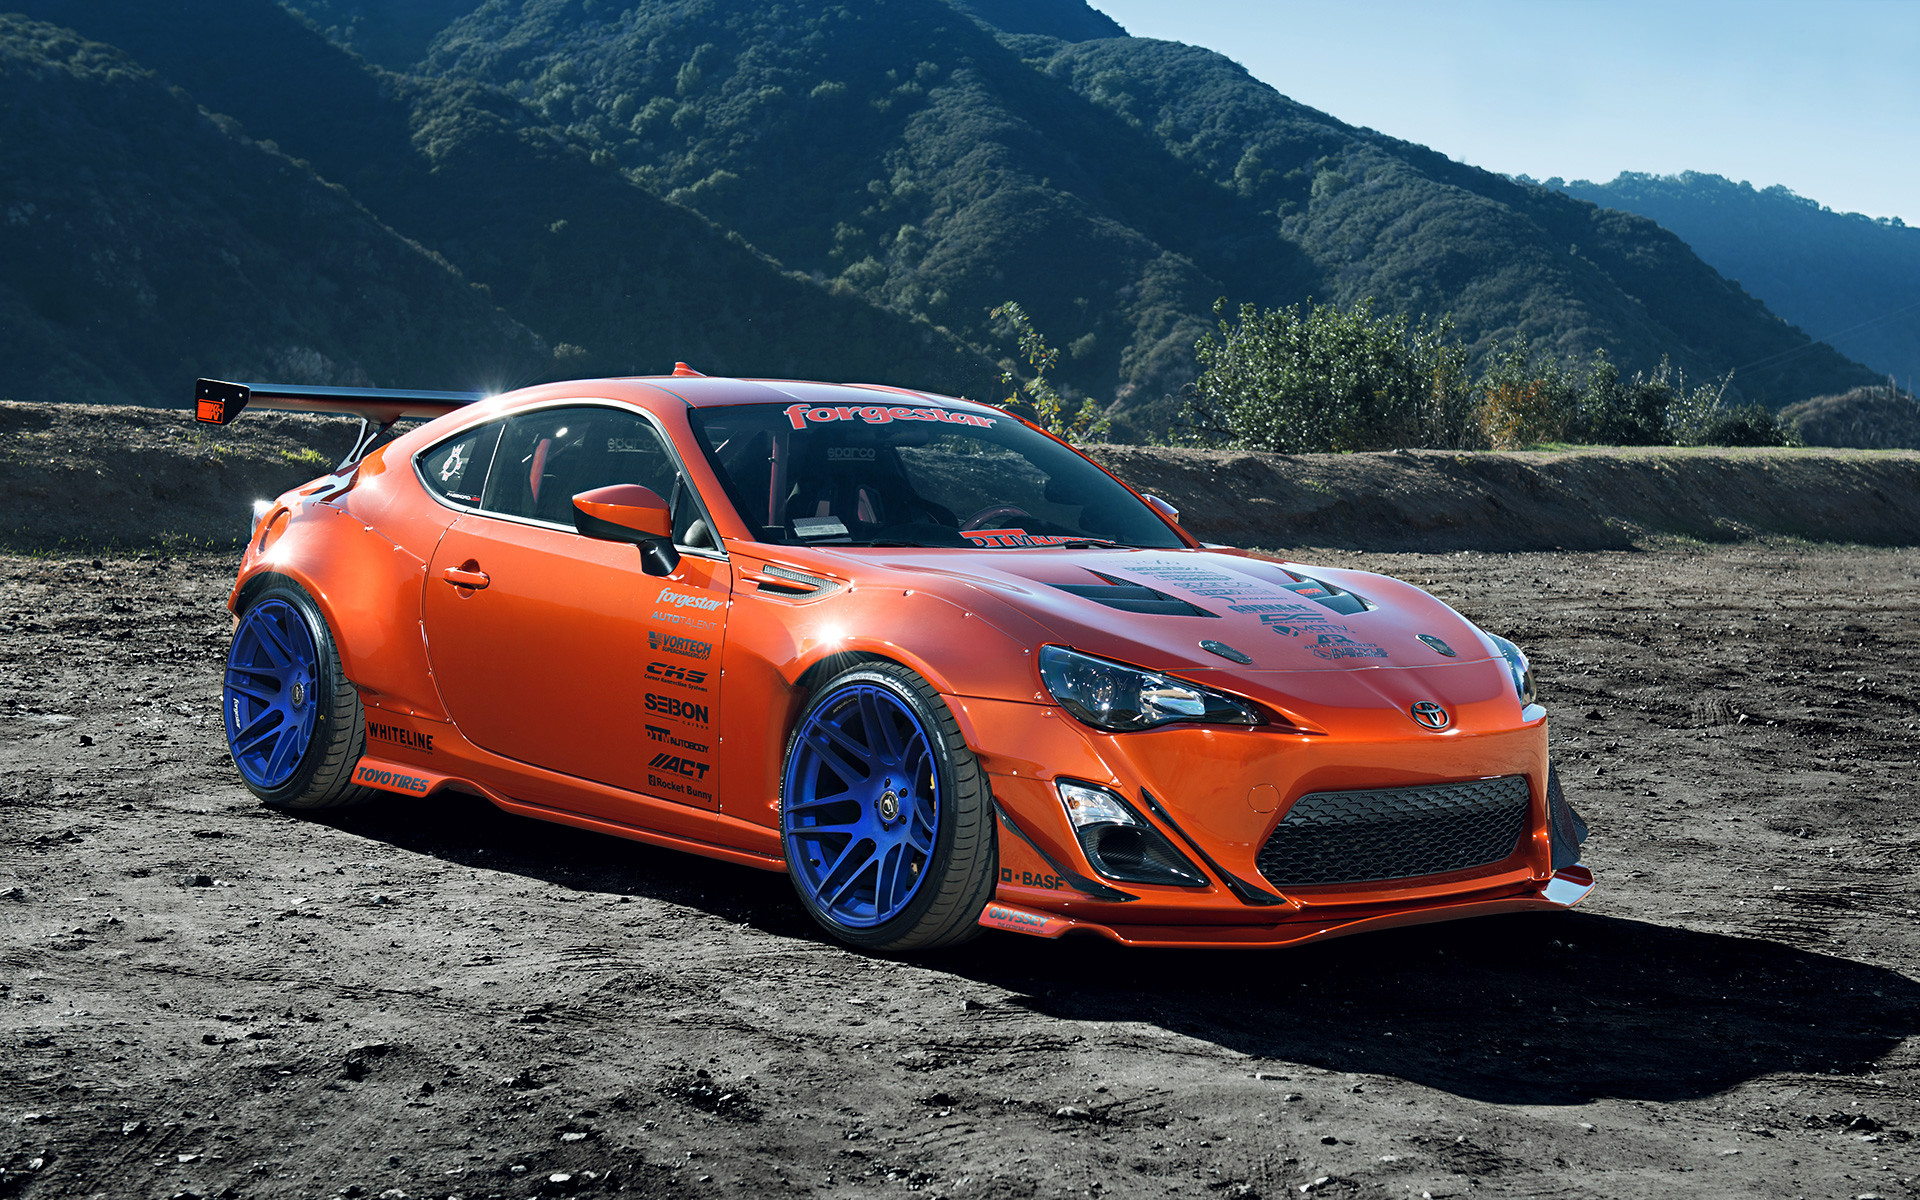 Toyota 86 Scion FR-S Tuning wallpaper | | 76682 | WallpaperUP